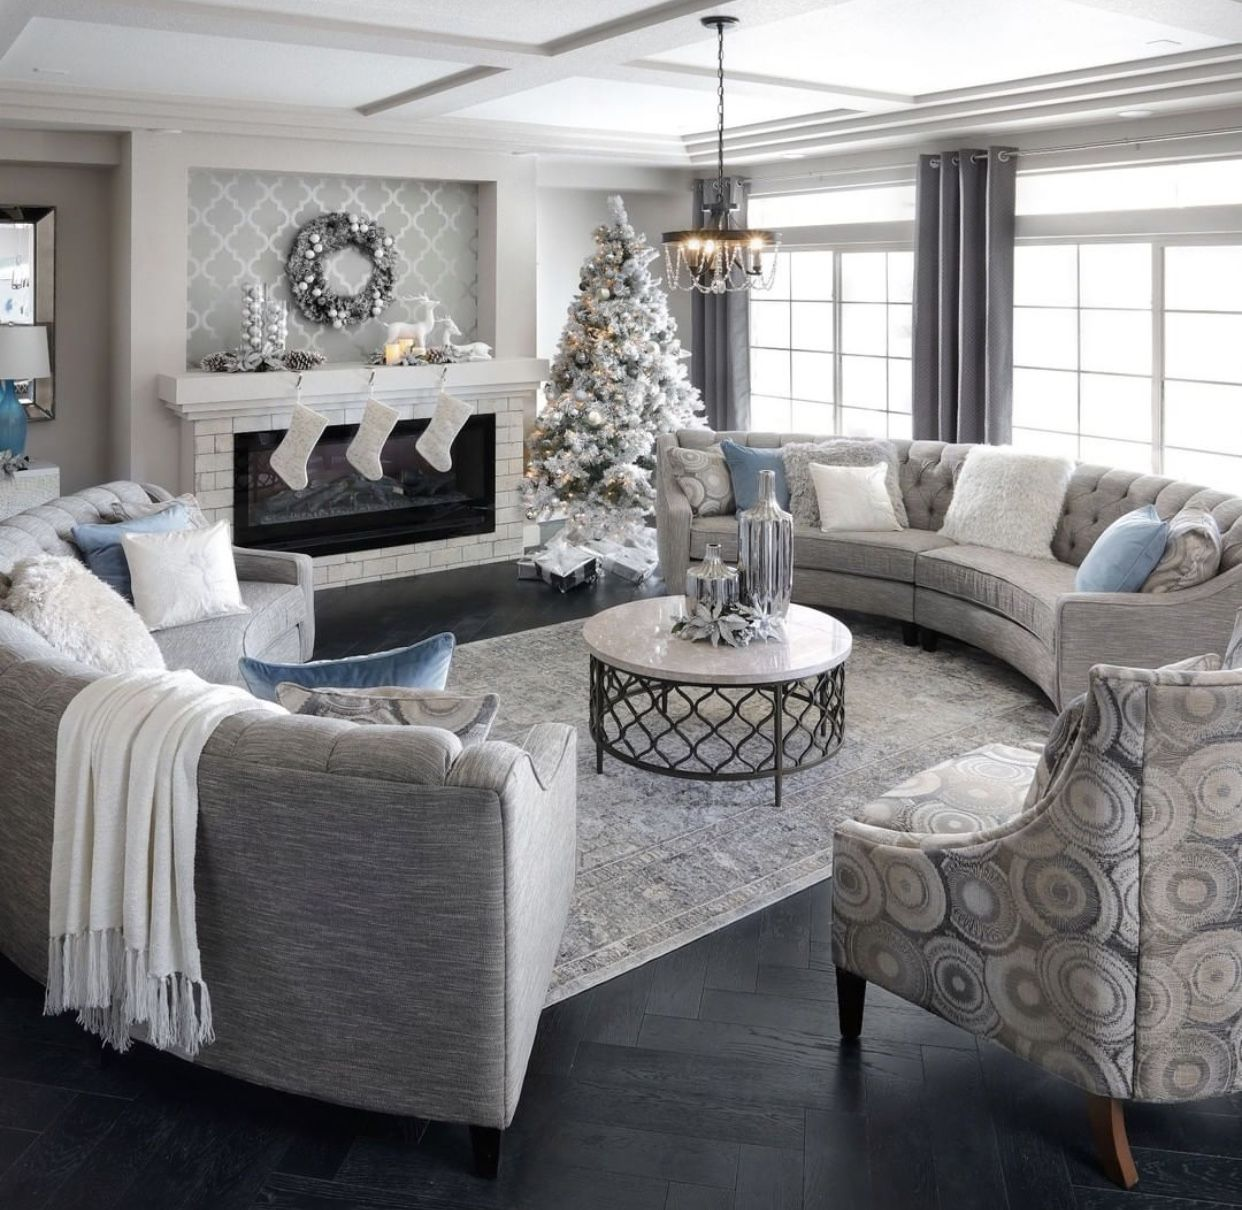 Marvelous Pin By Mary Gonzalez On My Home In 2019 Furniture Home Gamerscity Chair Design For Home Gamerscityorg